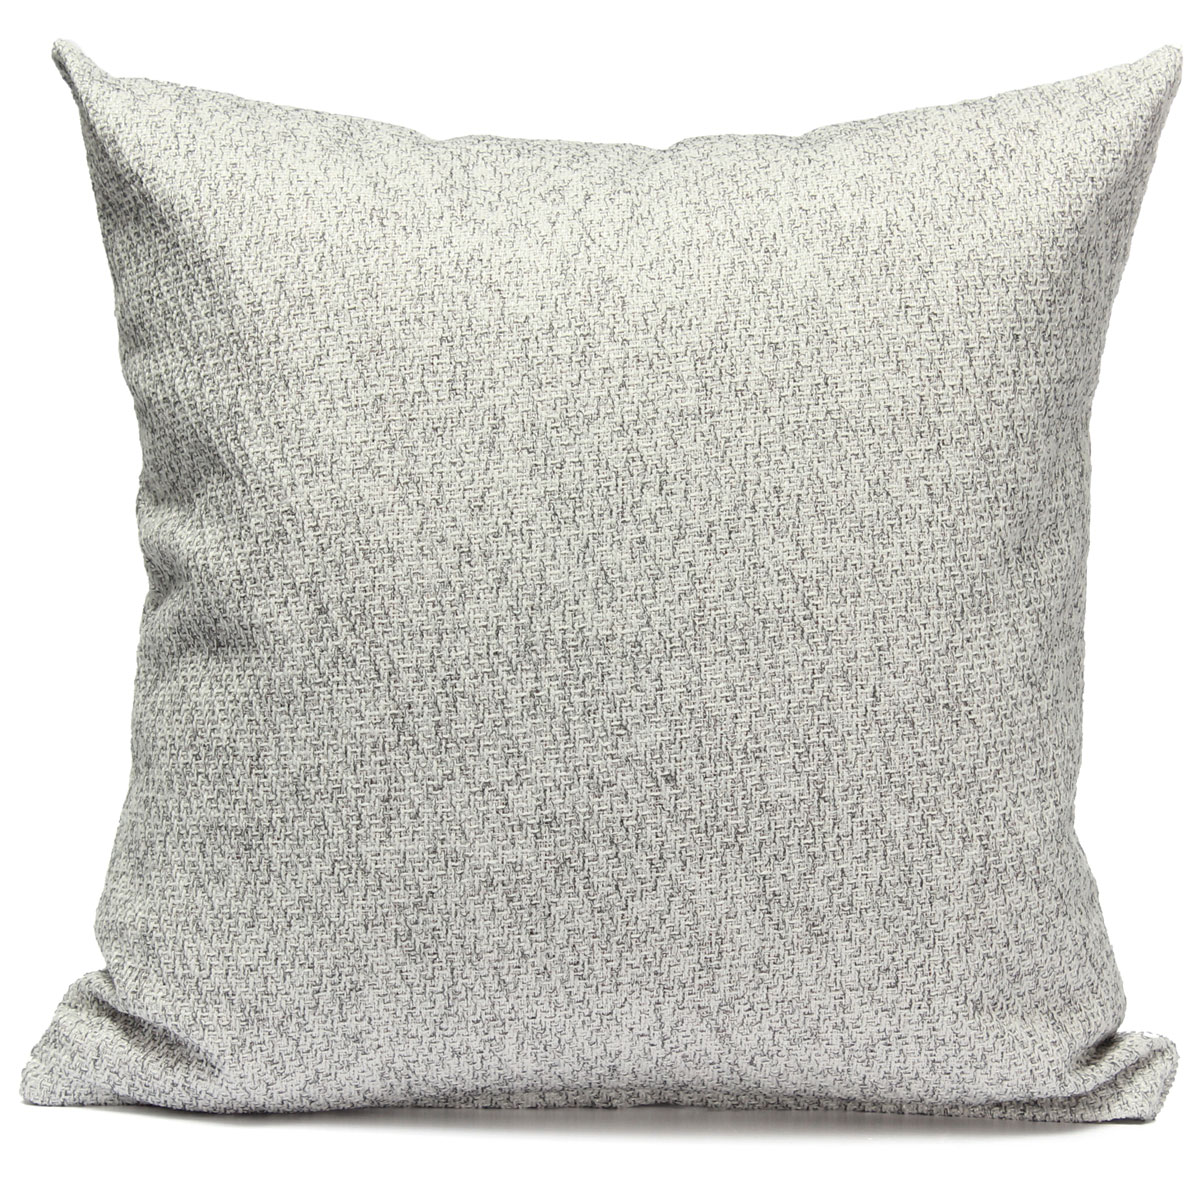 Simple Cotton Linen Throw Waist Pillow Case Sofa Car Cushion Cover Home Decor